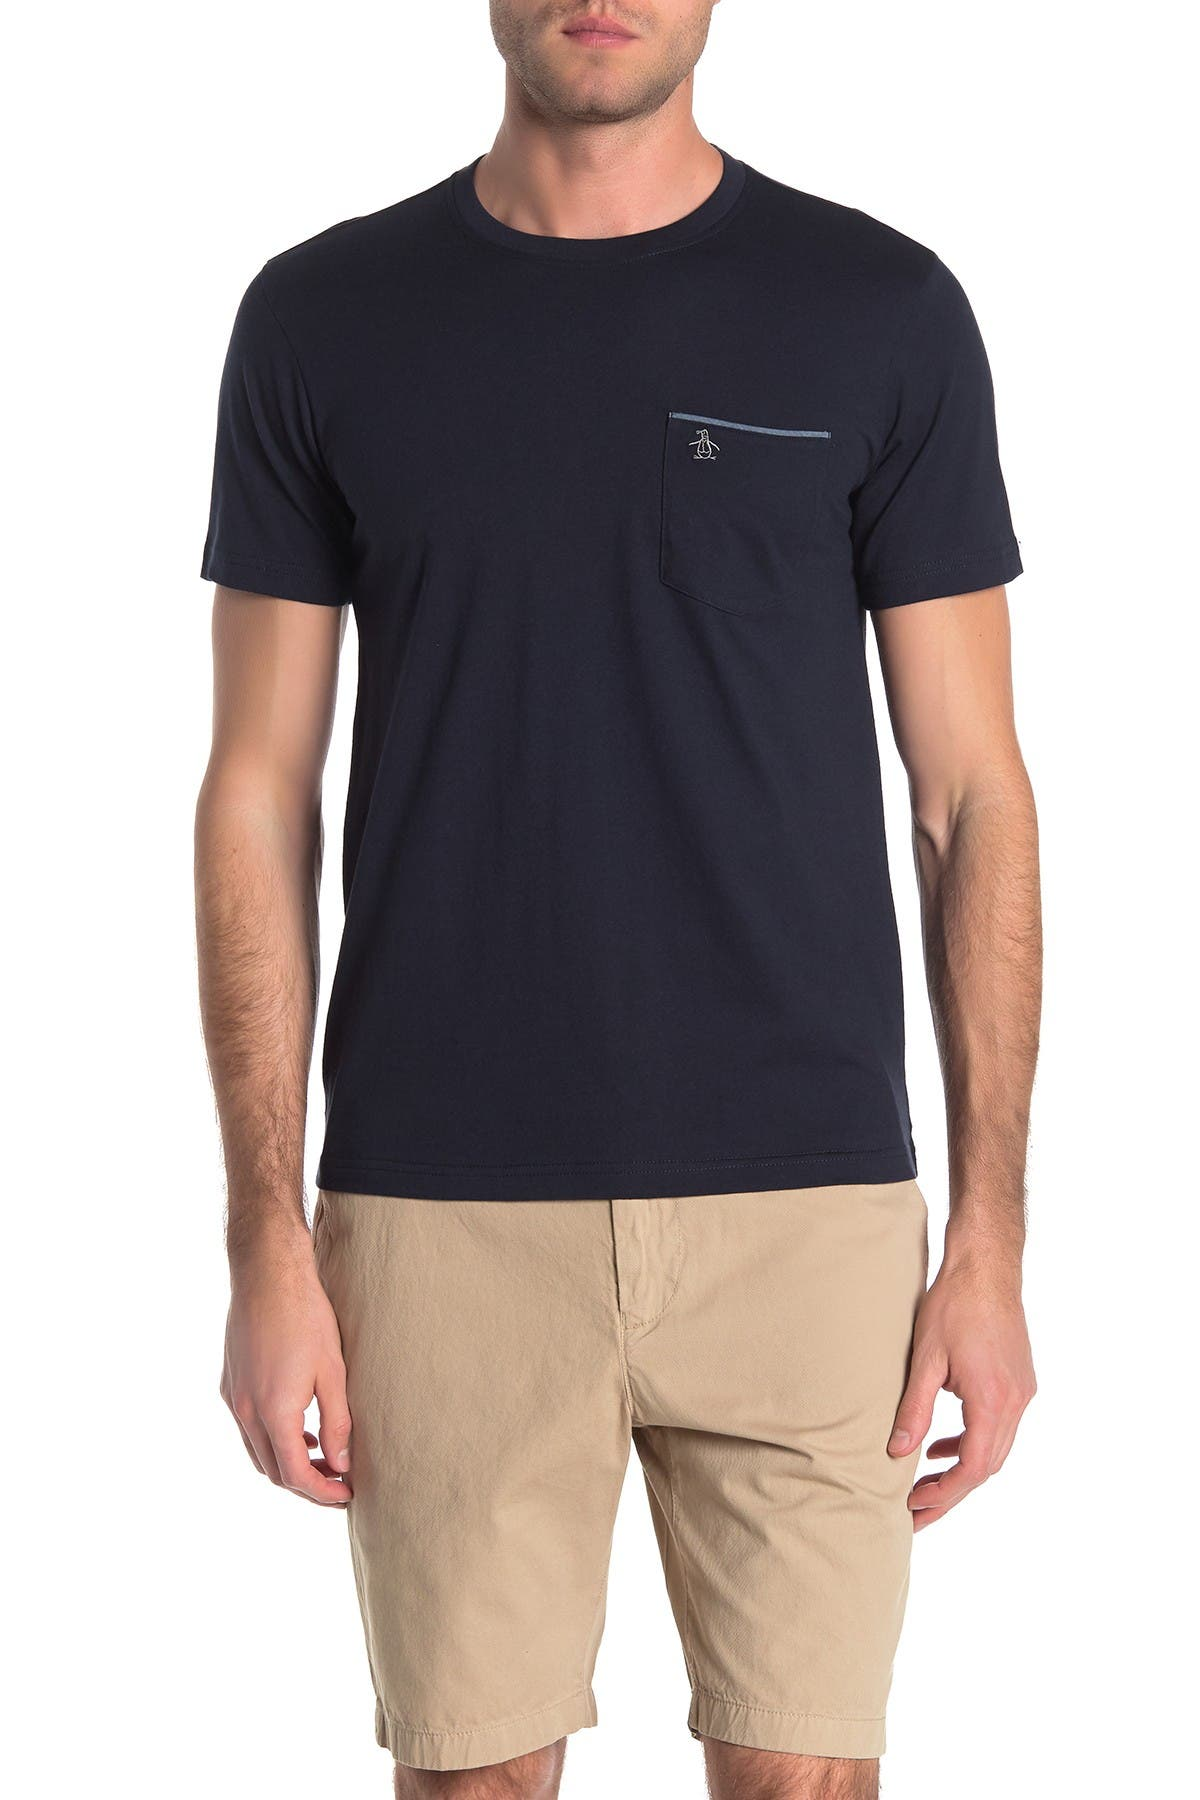 Image of Original Penguin Chambray Trim Pocket T-Shirt